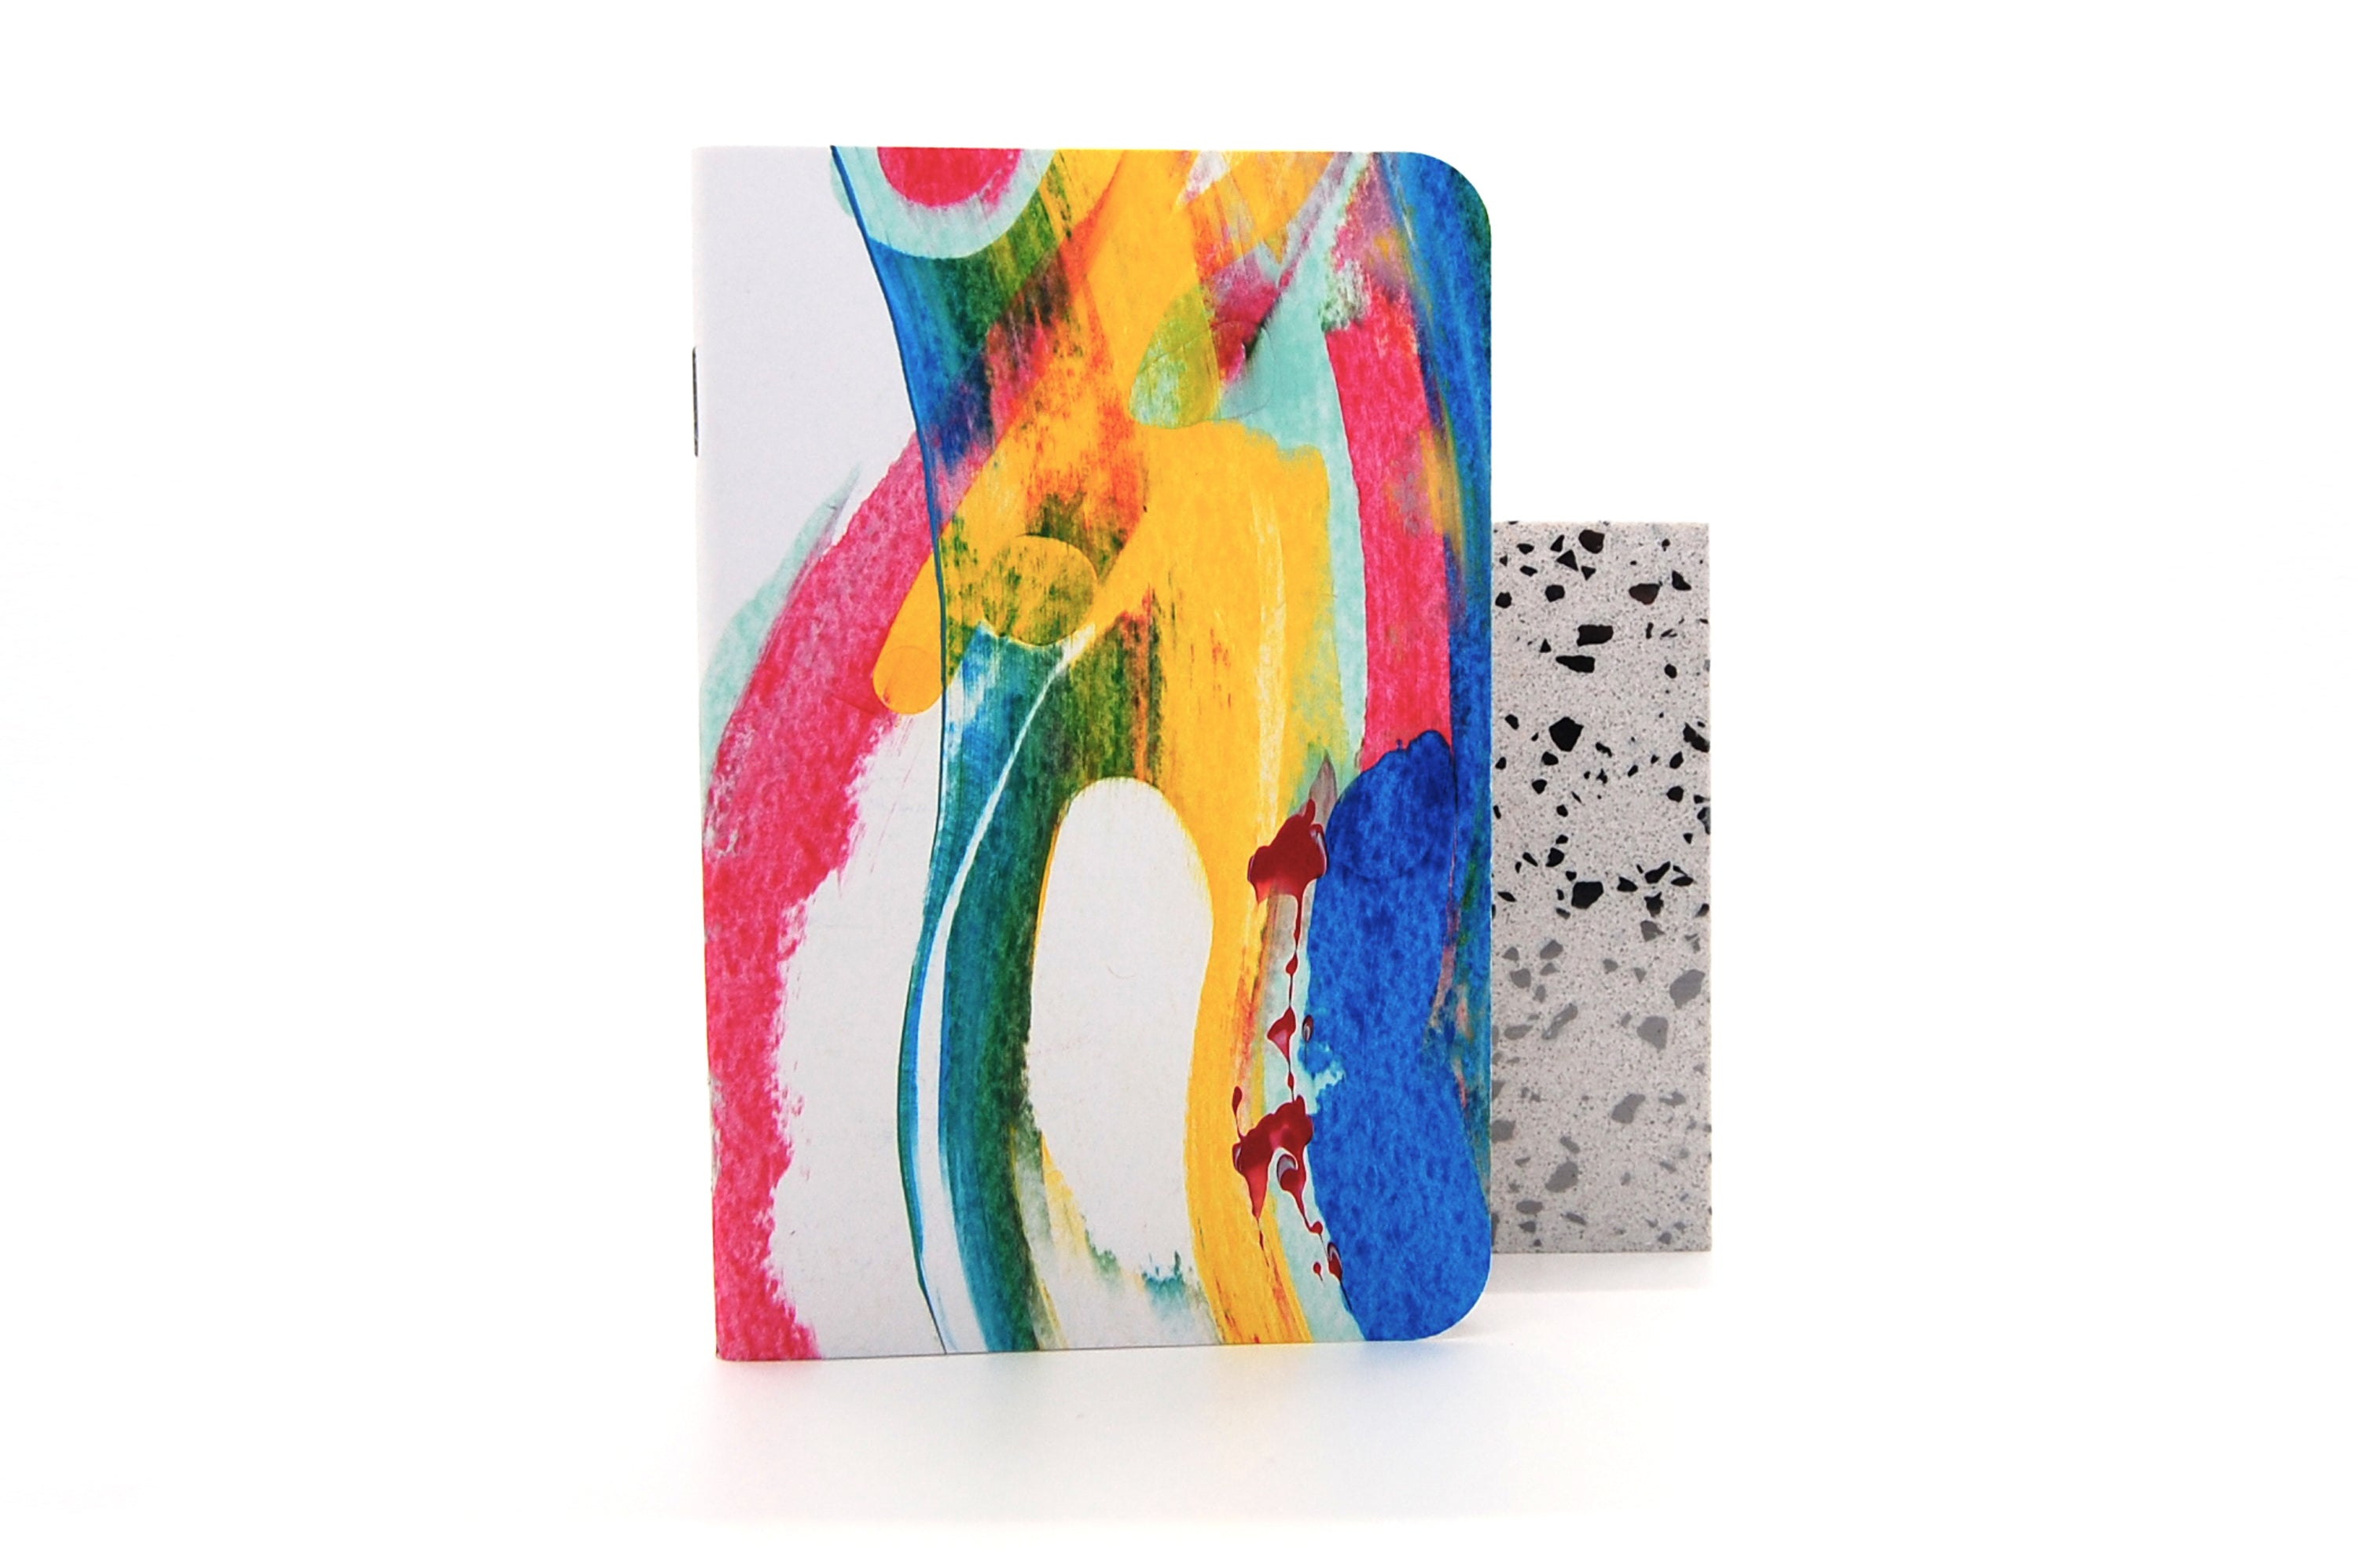 Arkward_Rainbow Imprint_Stationery_Notebook